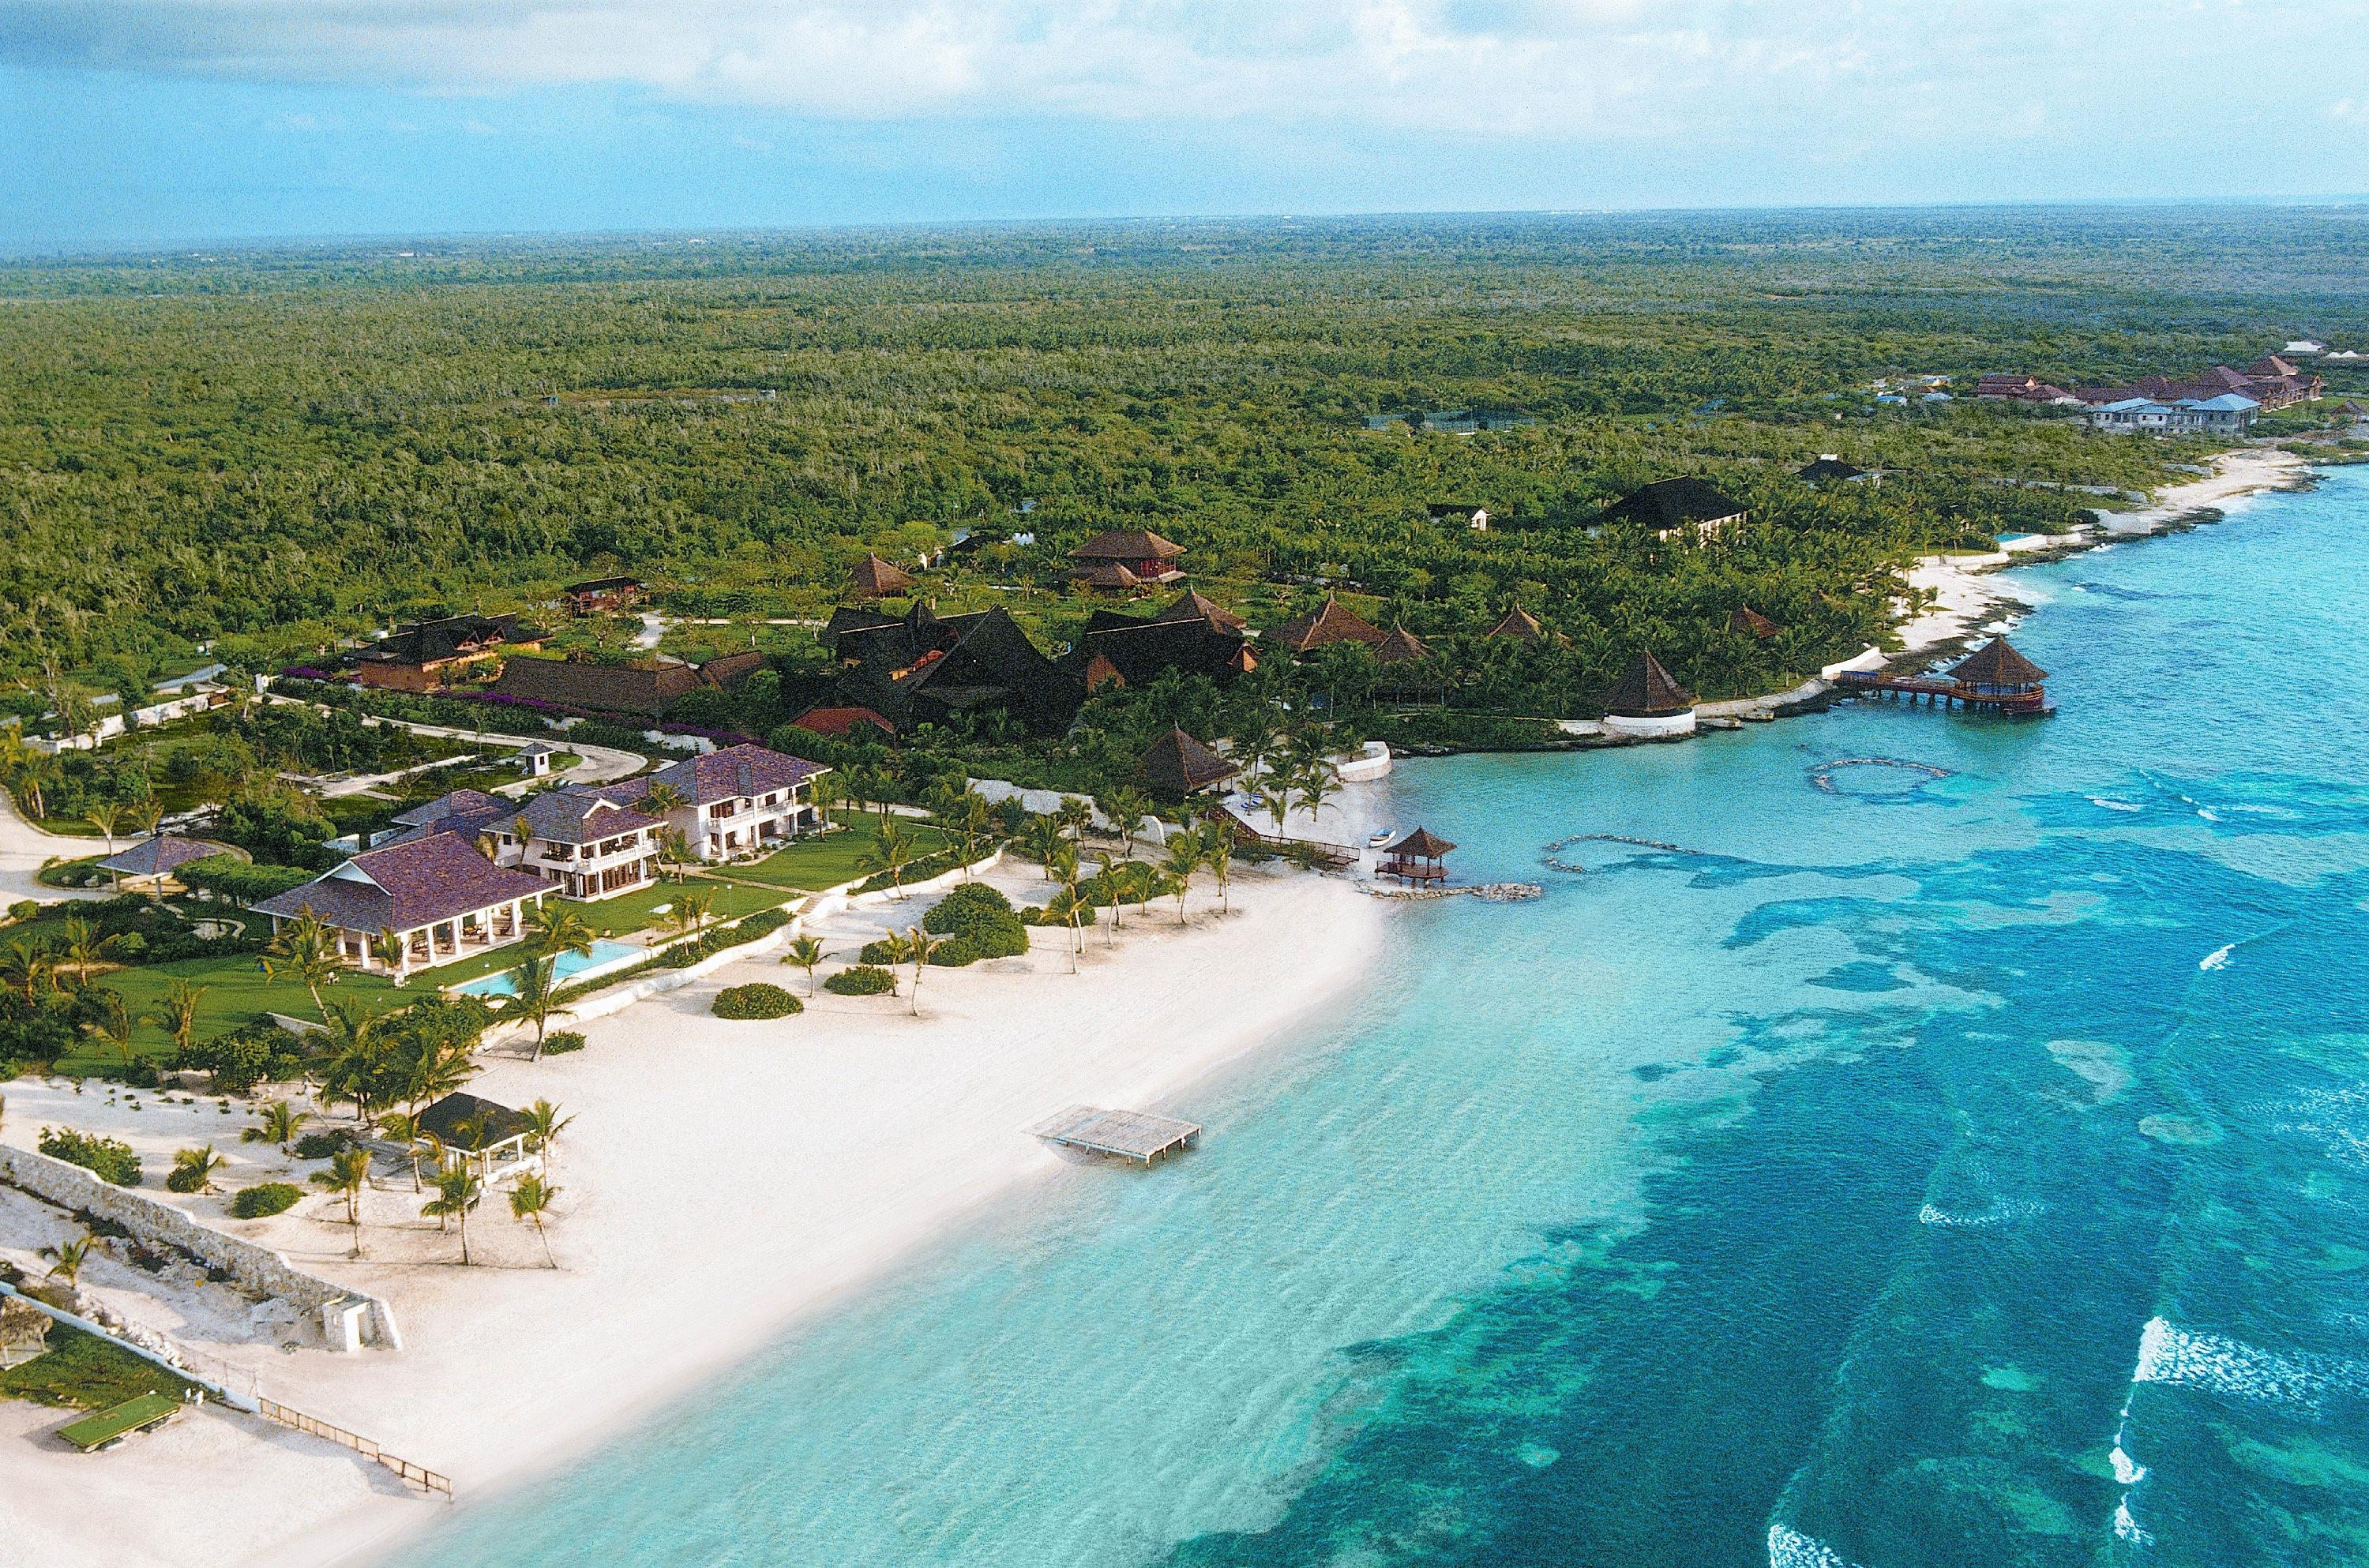 Former US President Bill Clinton and his New York Senator wife Hillary are reportedly looking for a holiday home in the stunning Dominican Republic resort of PuntaCana\nCredit: Paul Barton / WENN\n\n(WENN does not claim any Copyright or License in the atta